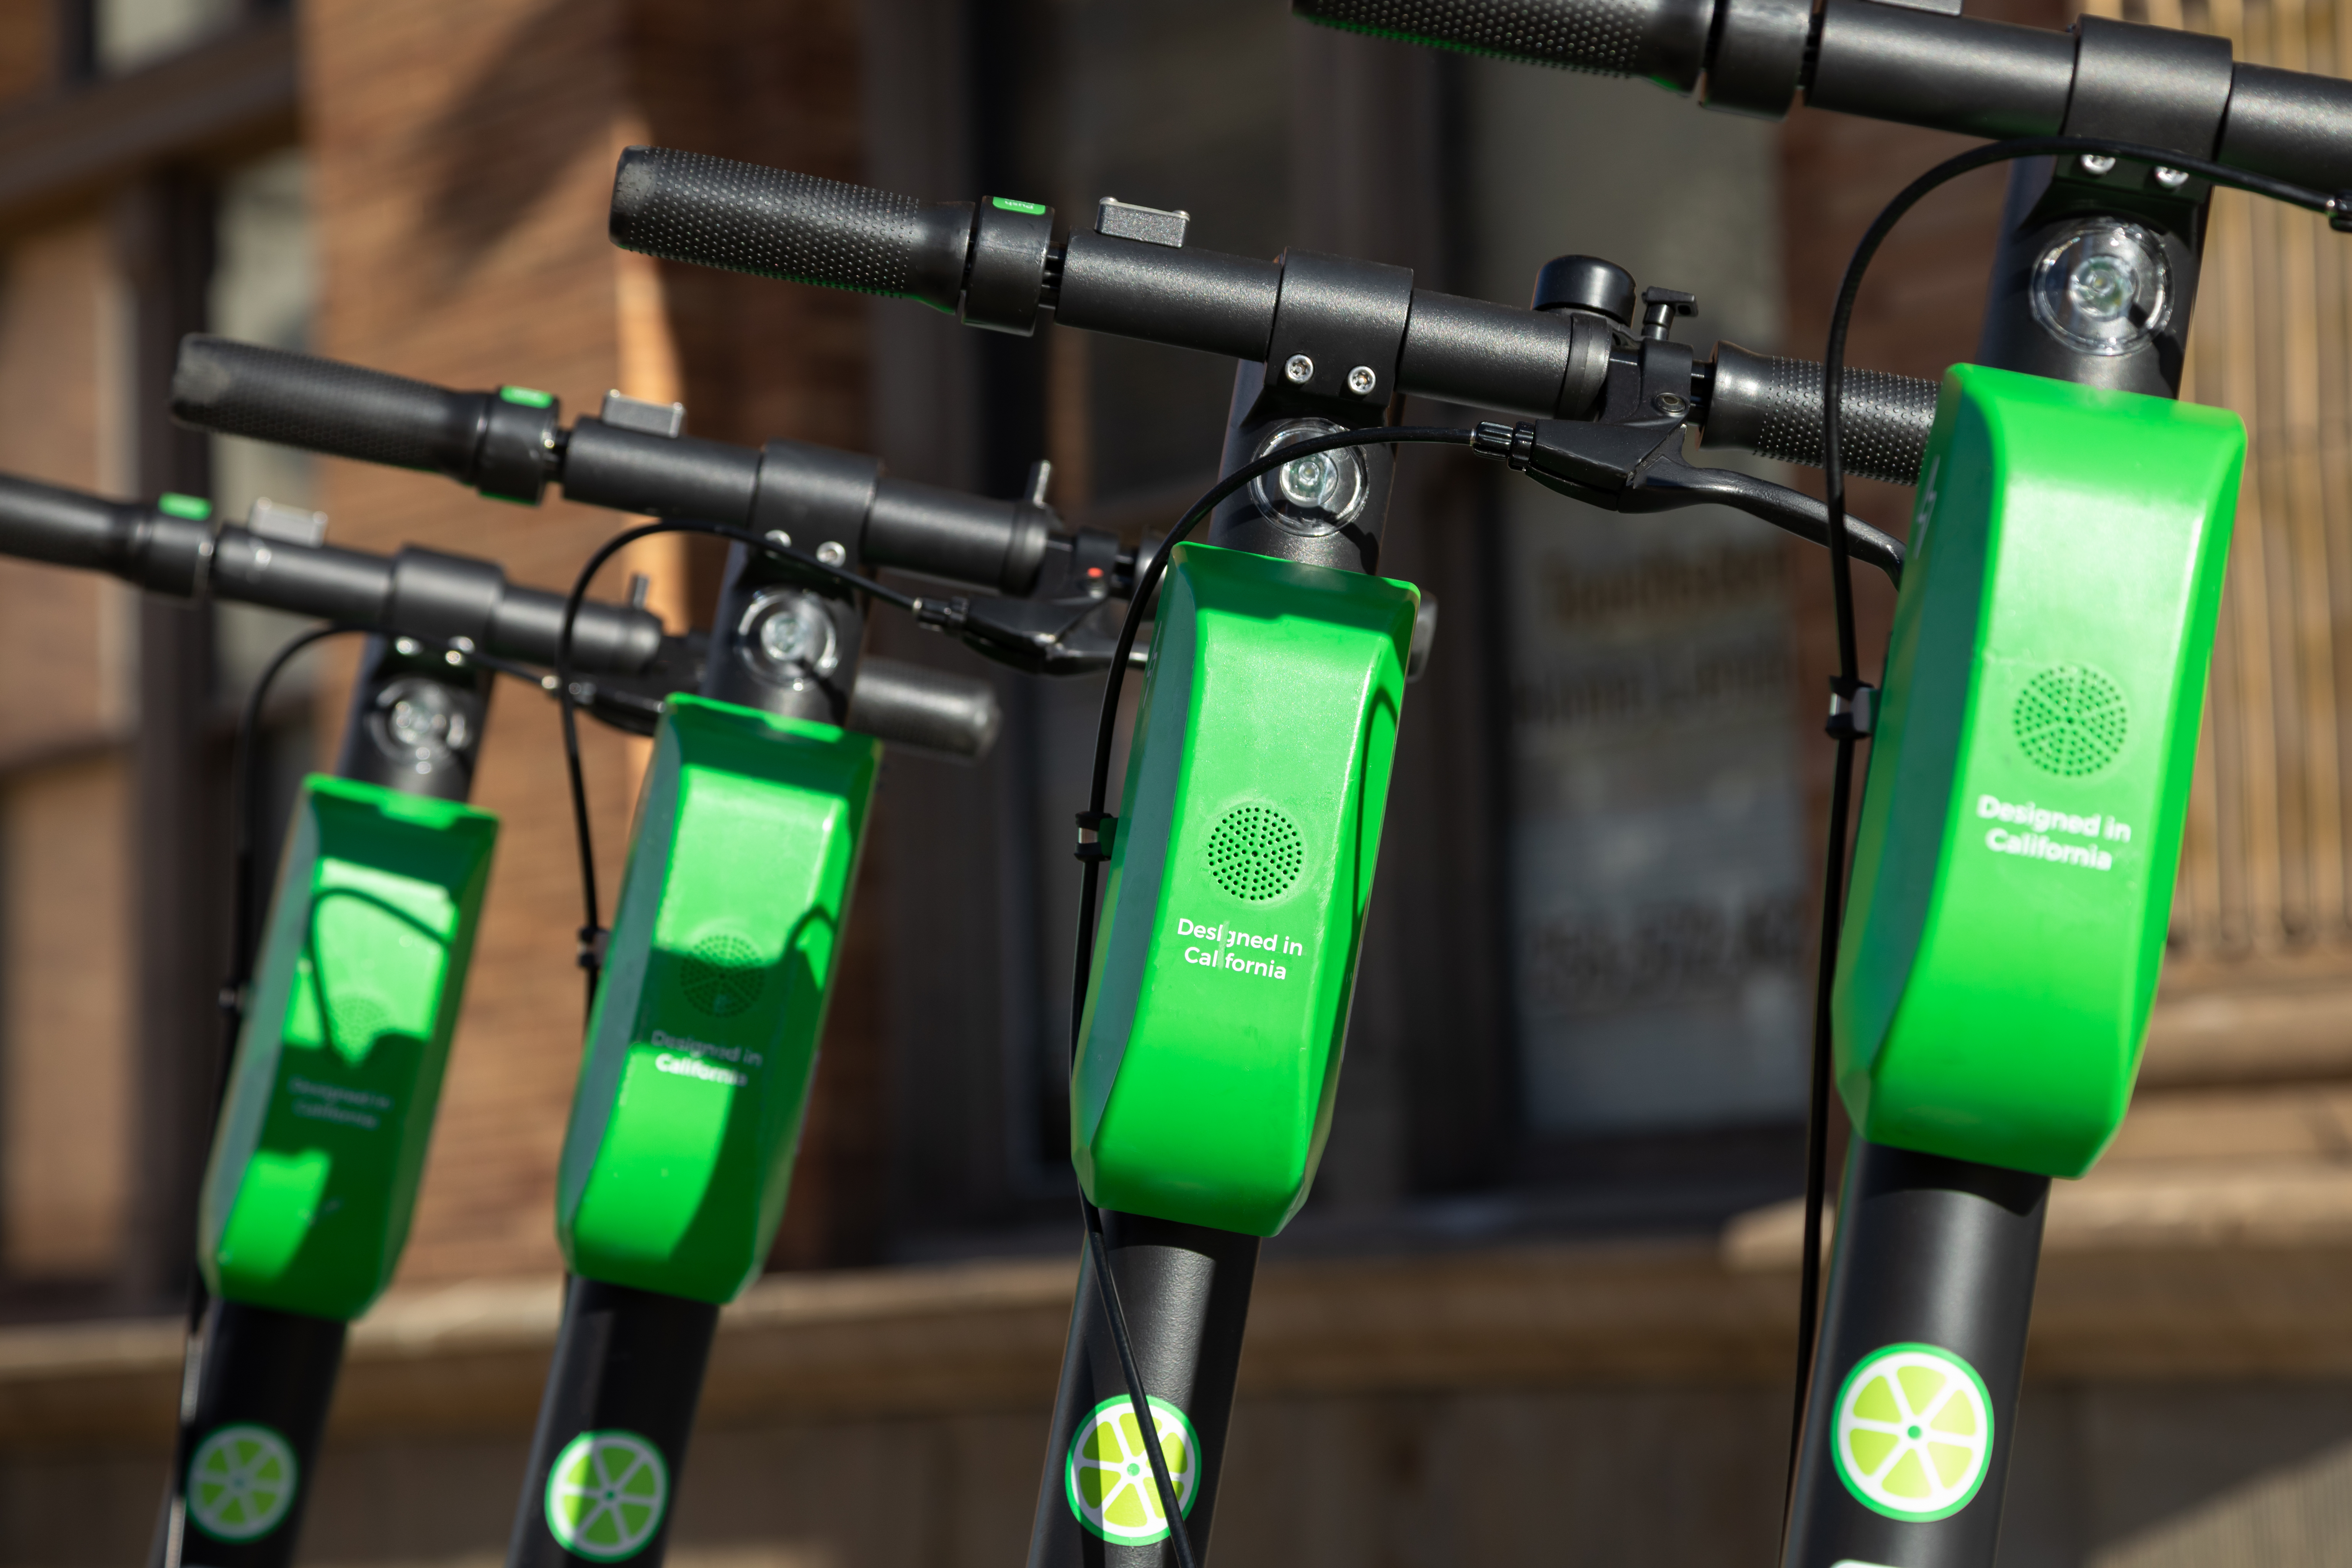 Four sets of handlebars, each with a rectangular green battery pack attached and a round lime logo at the base, with bricks in the background.